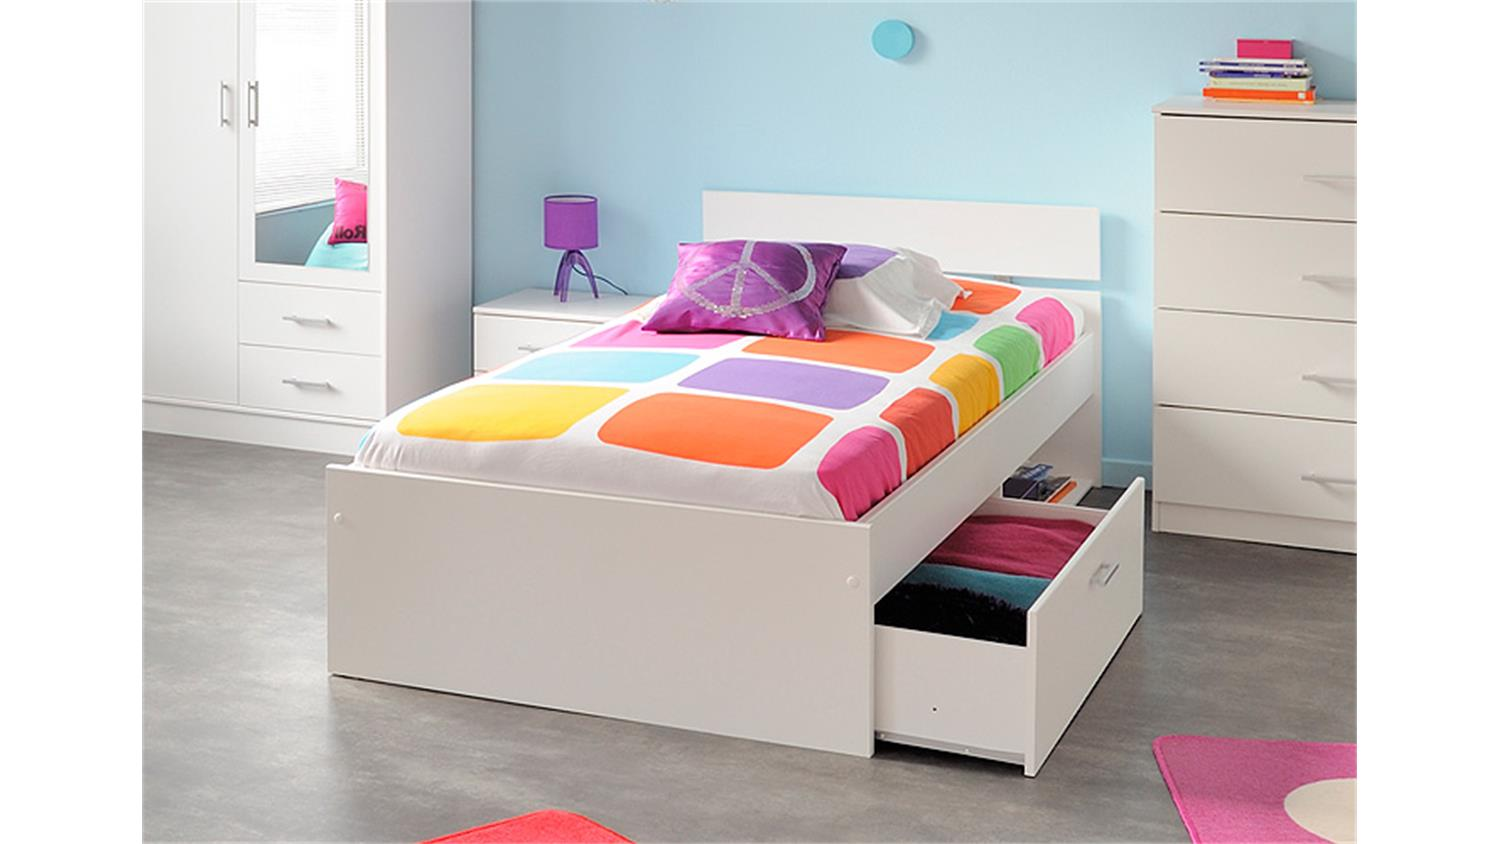 bett infinity kinderbett stauraumbett in wei dekor 90x200. Black Bedroom Furniture Sets. Home Design Ideas